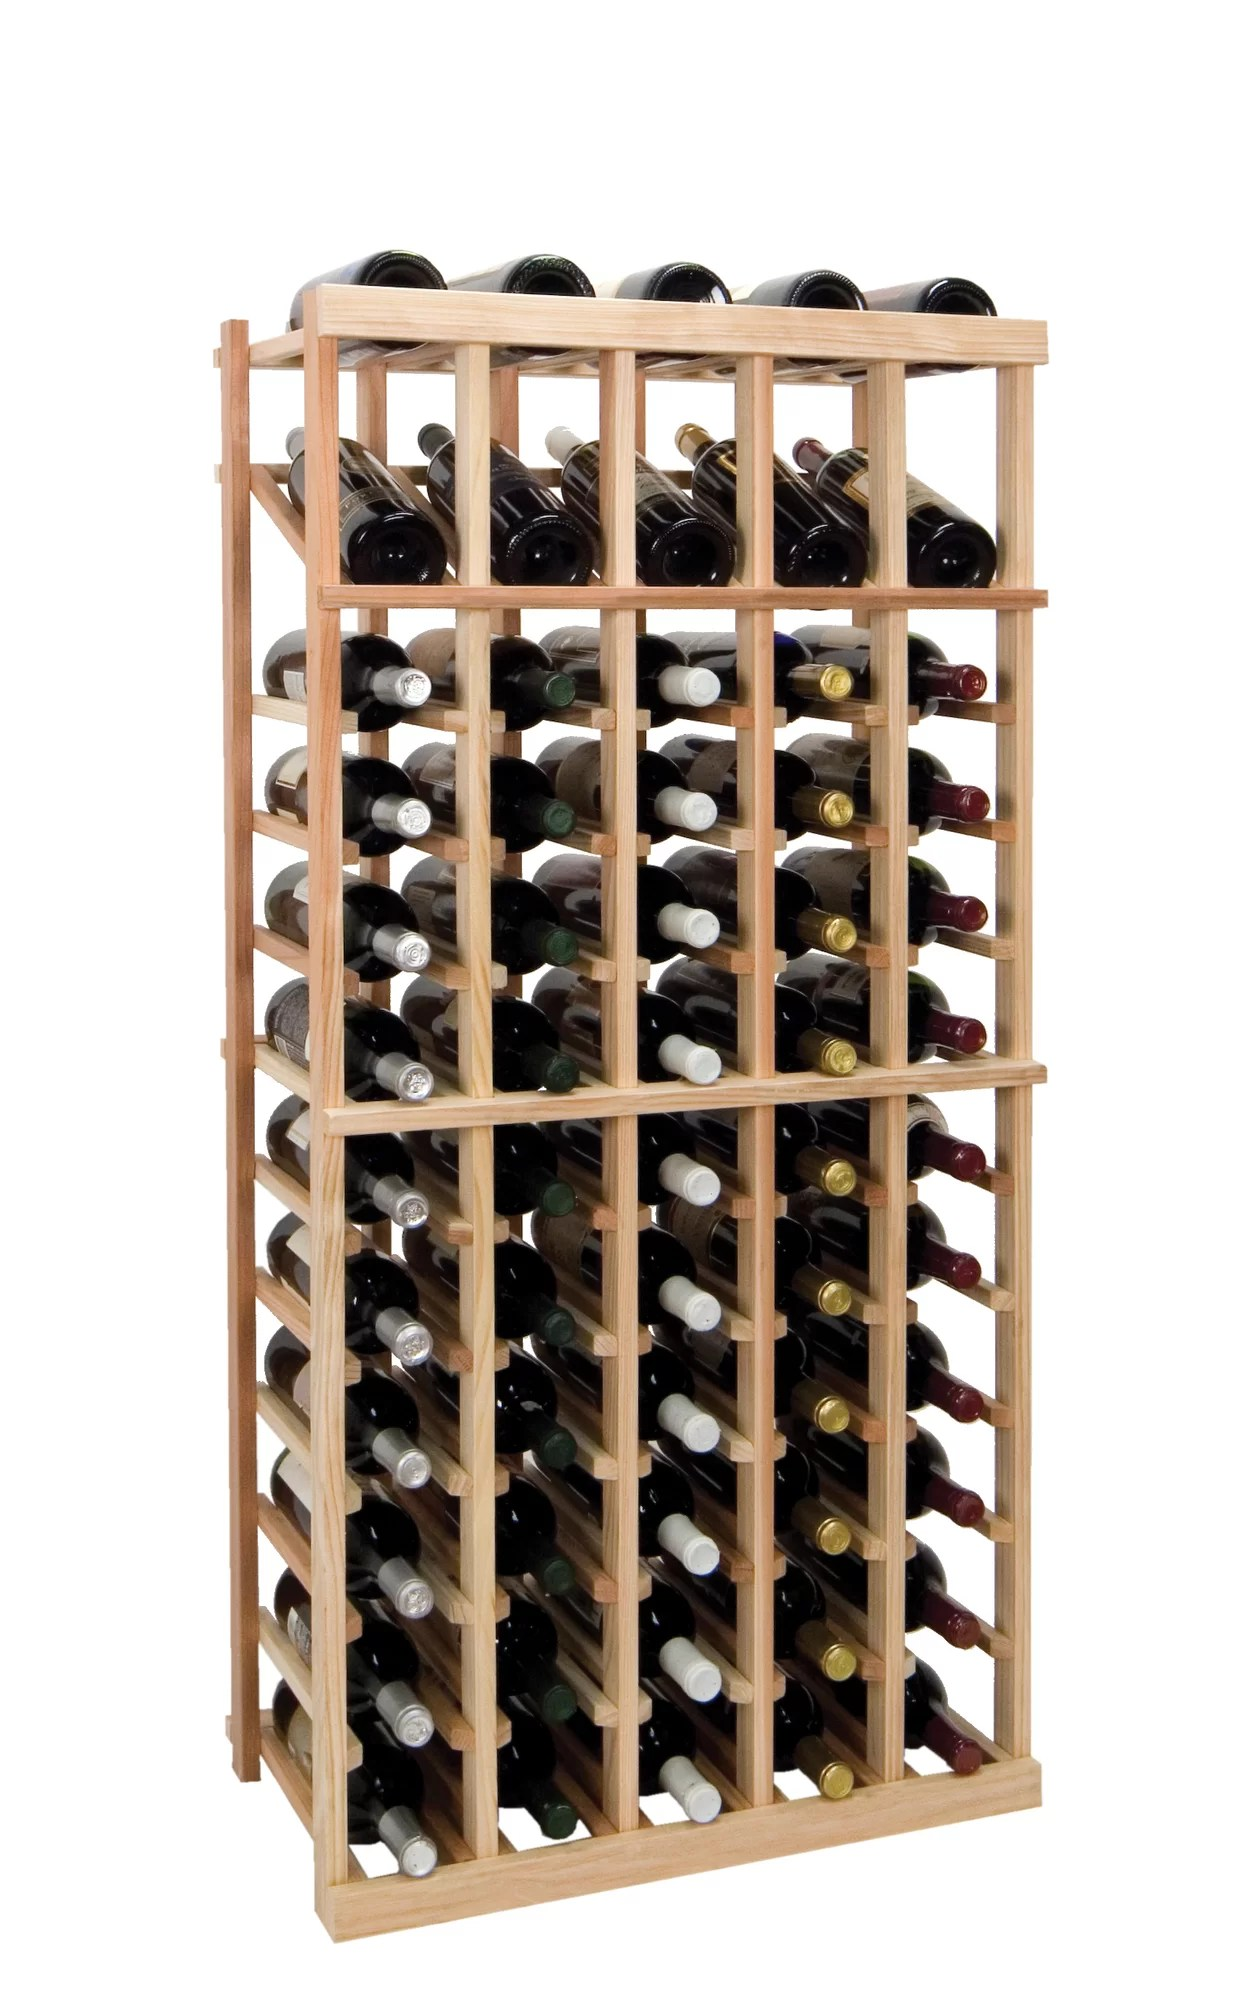 In Floor Wine Storage Wine Cellar Innovations Vintner Series 60 Bottle Floor